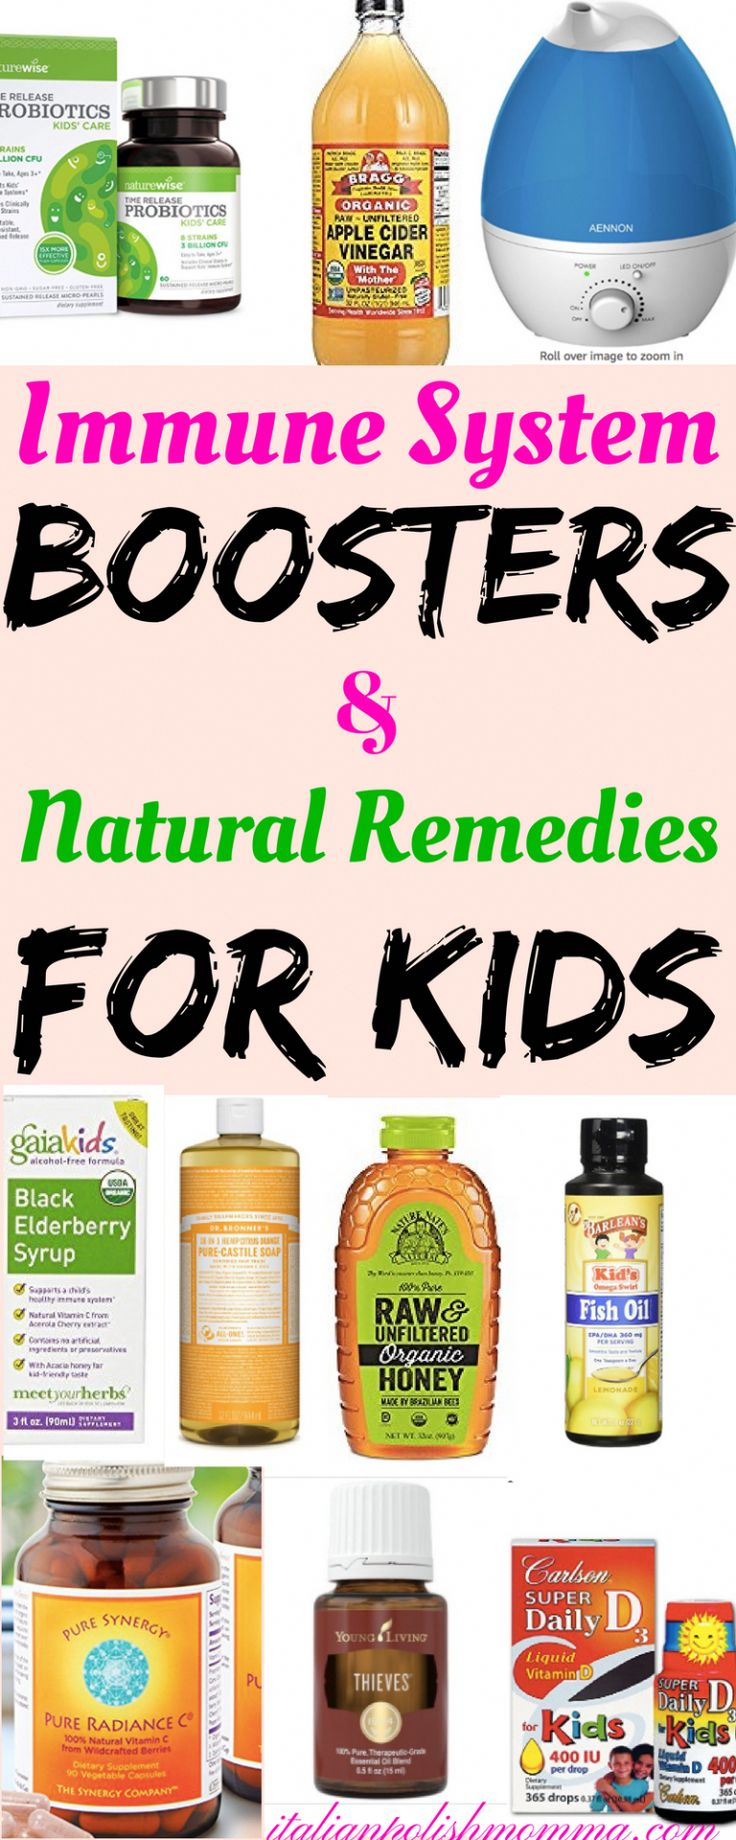 Immune system boosters, vitamins, and natural remedies for